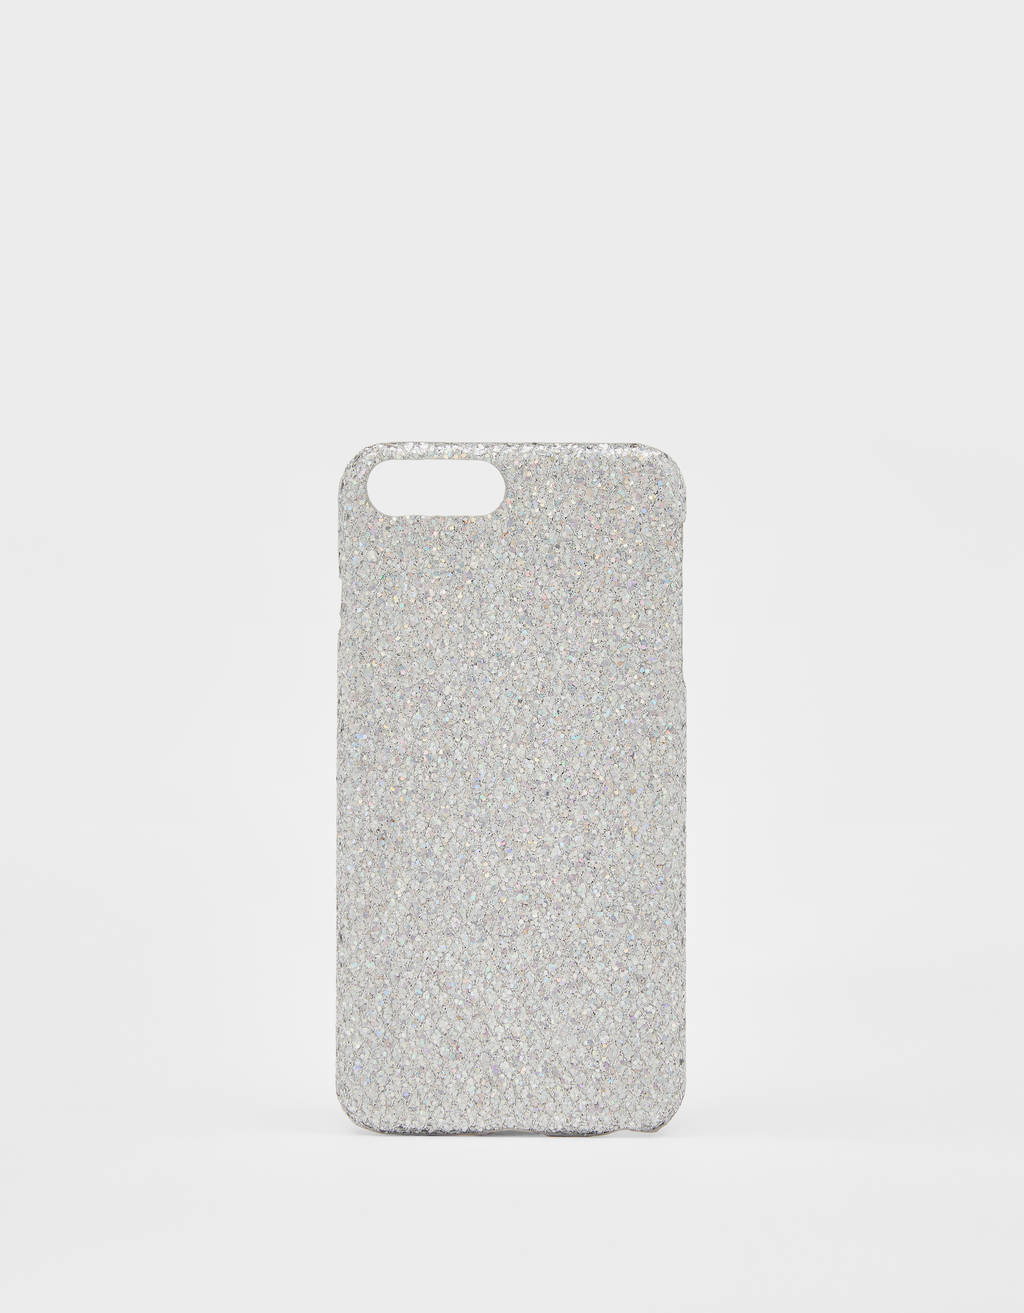 Carcassa amb brillantors iPhone 6 plus/7 plus/8 plus